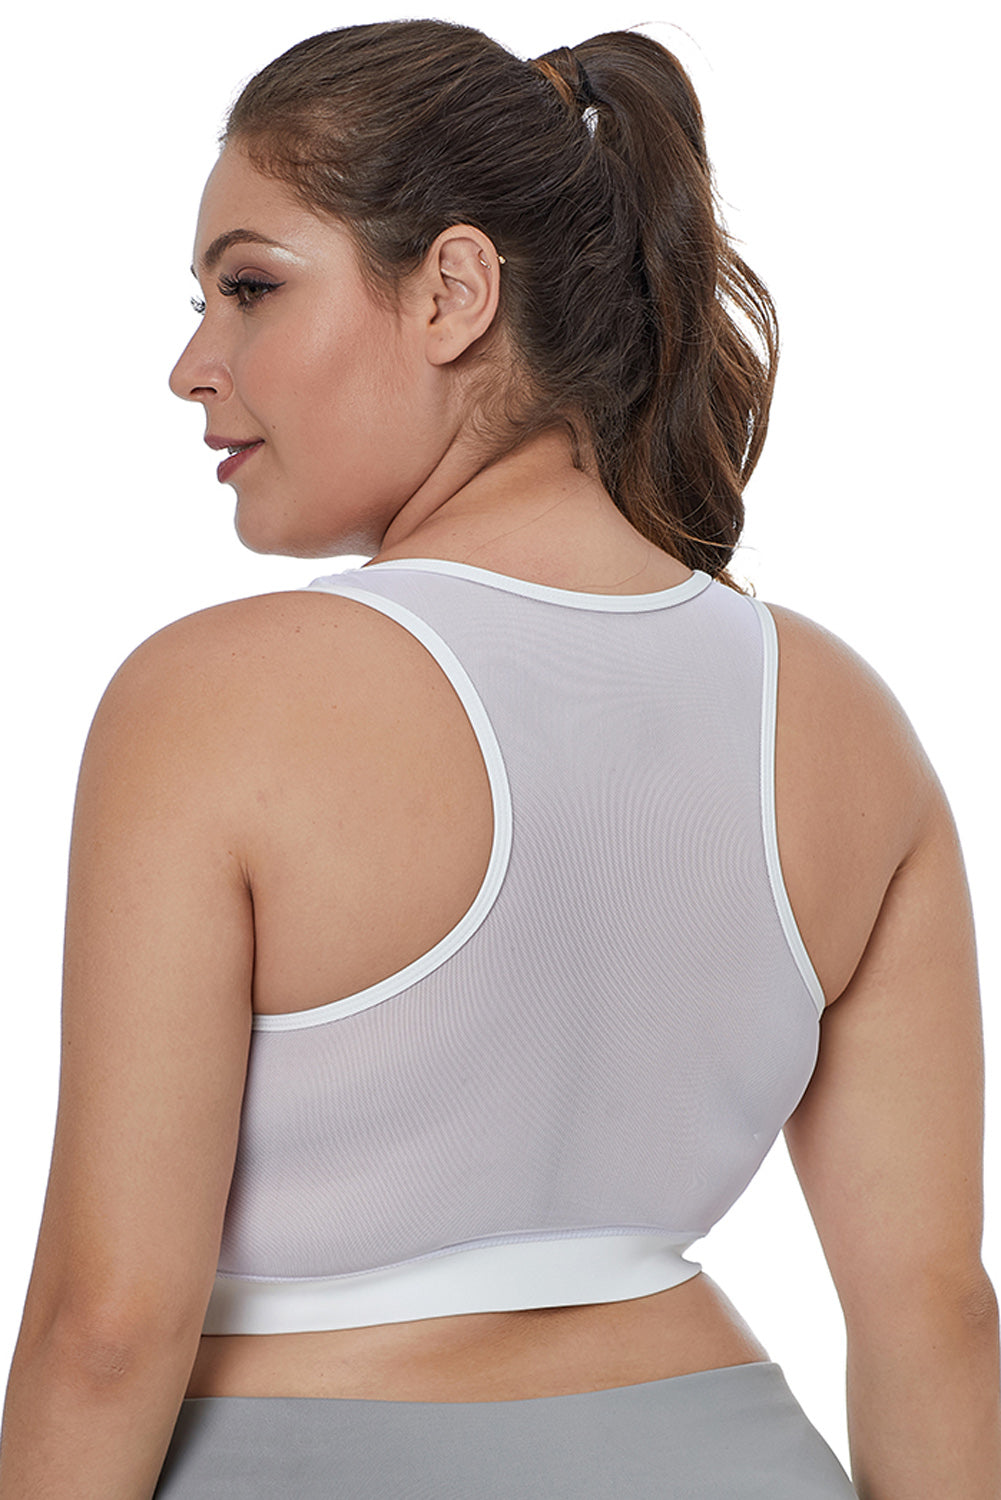 White Sheer Mesh Back Plus Size Sports Bra